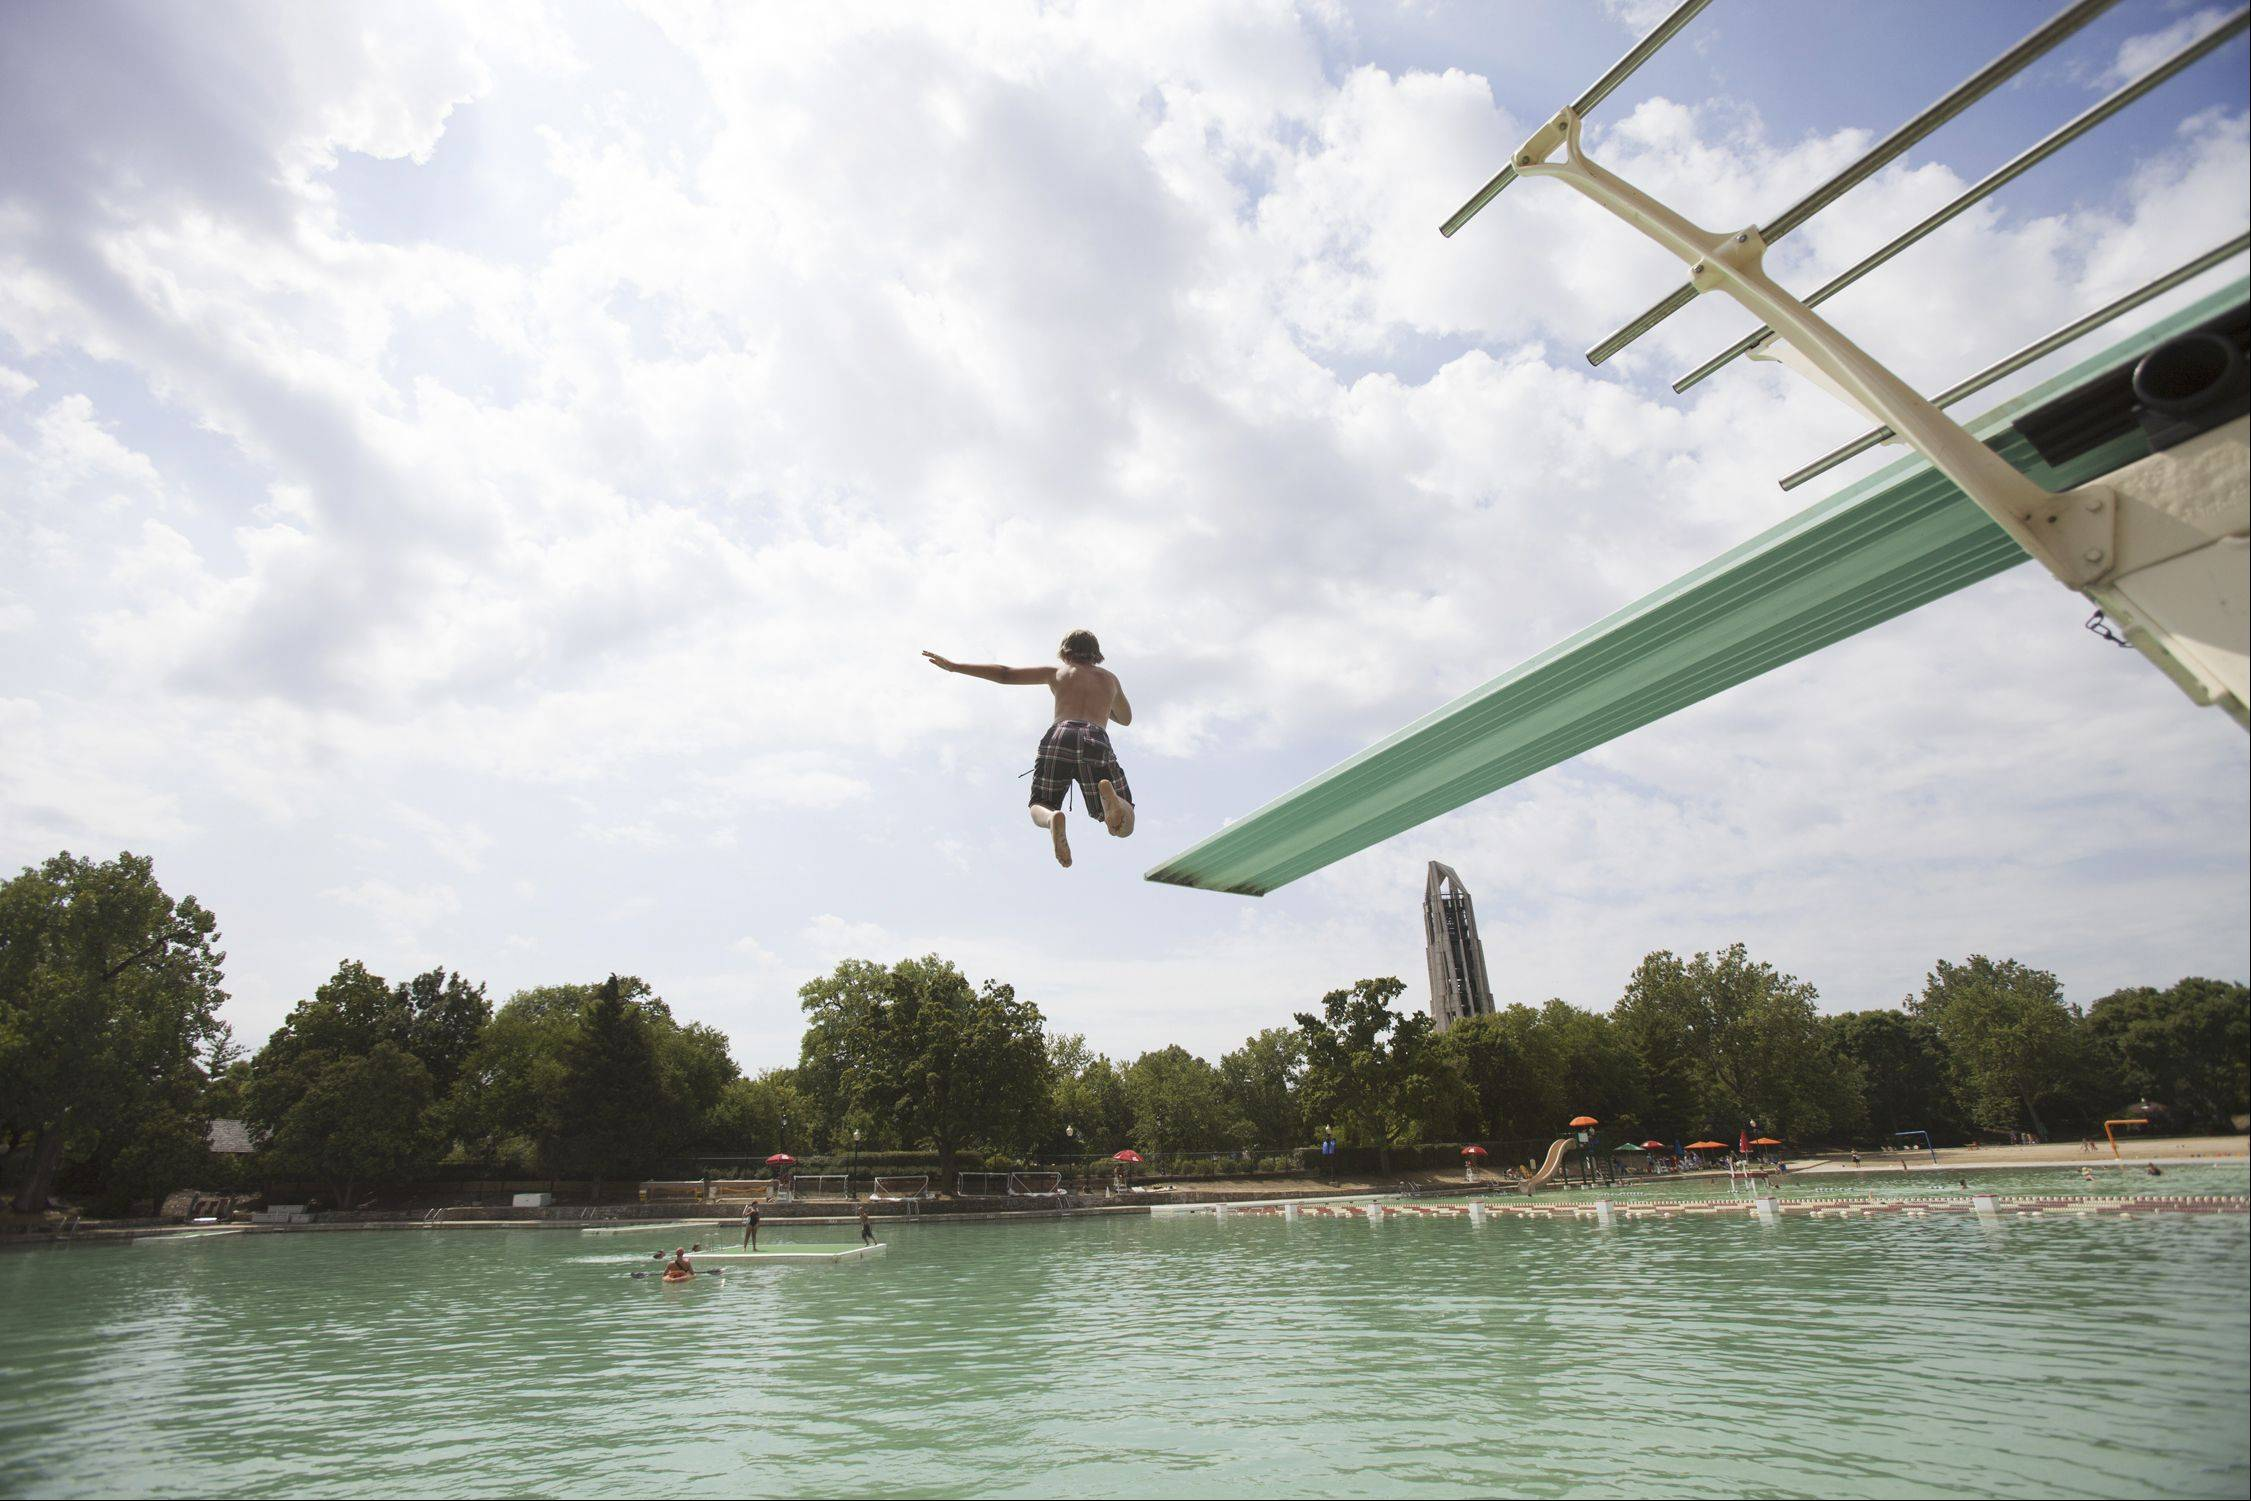 Naperville's Centennial Beach counts diving boards among its amenities.